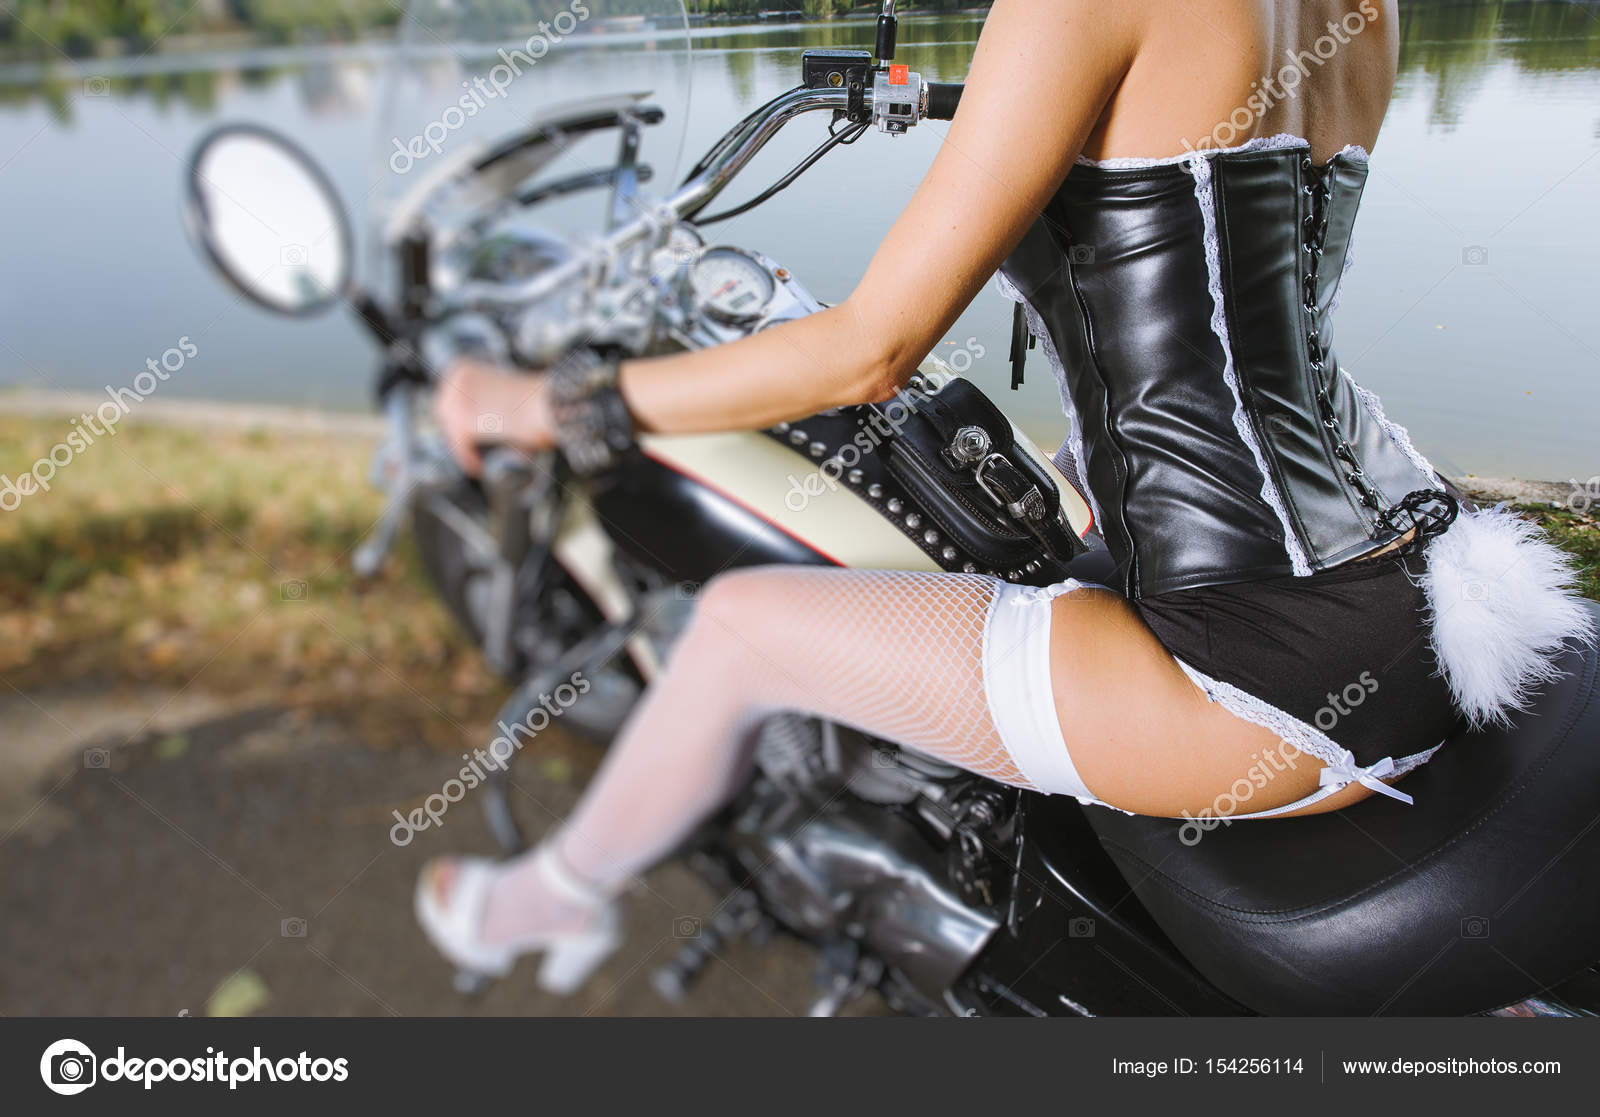 old school motorcycle sexy girl